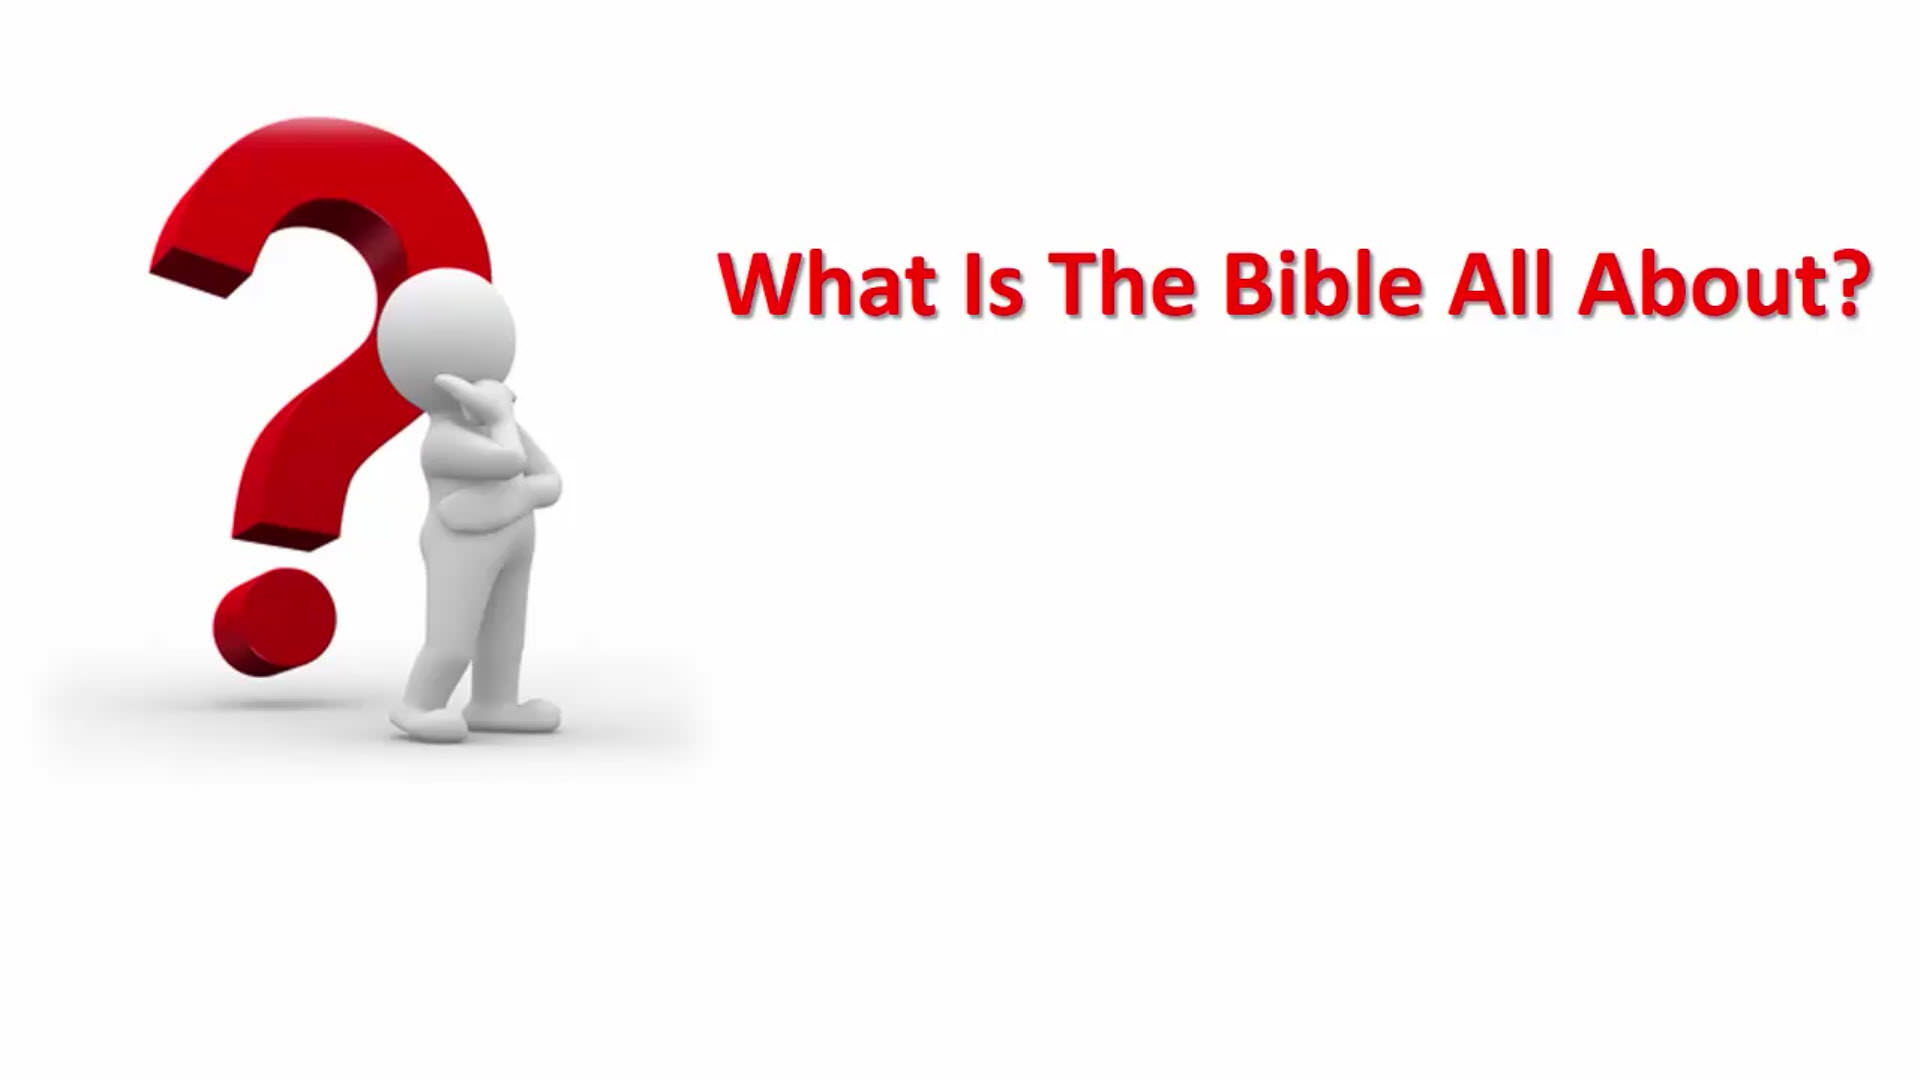 What Is The Bible All About?